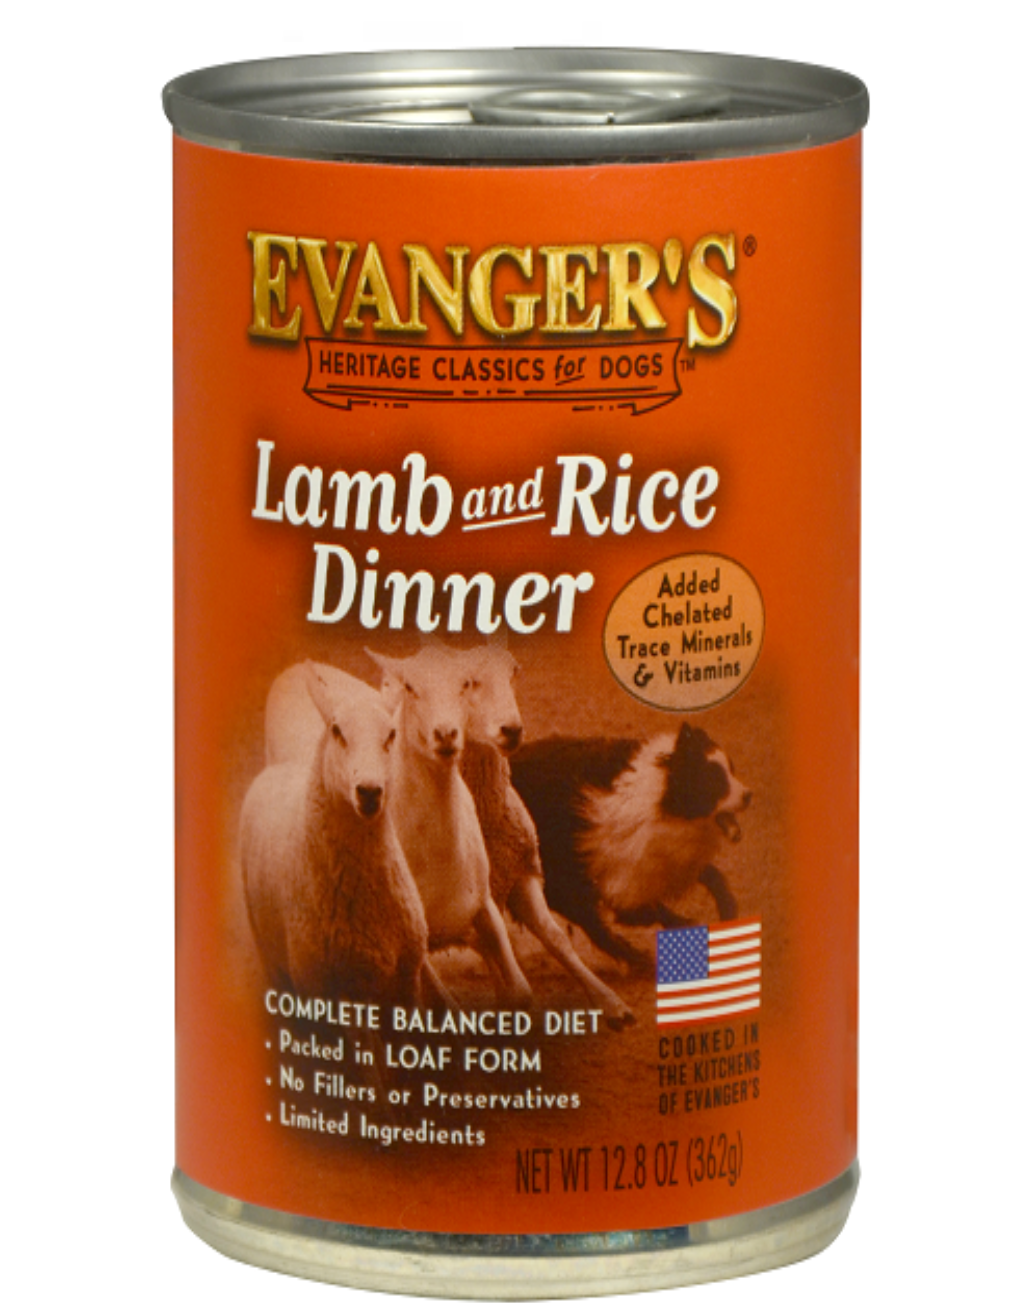 EVANGERS Evangers Lamb & Rice Dinner Canned Dog Food